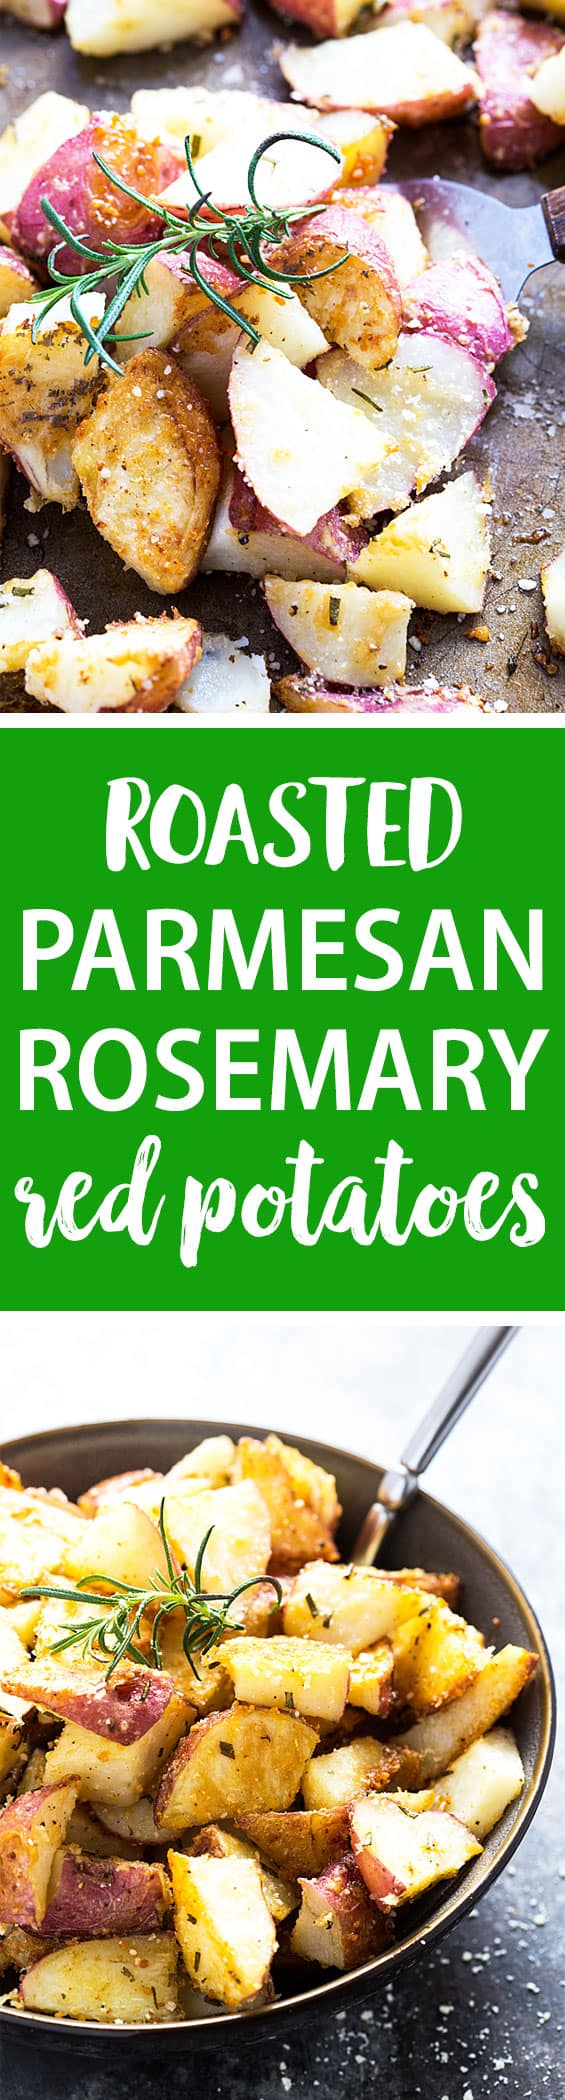 Roasted Parmesan Rosemary Red Potatoes - Crispy on the outside, tender on the inside and perfectly seasoned!